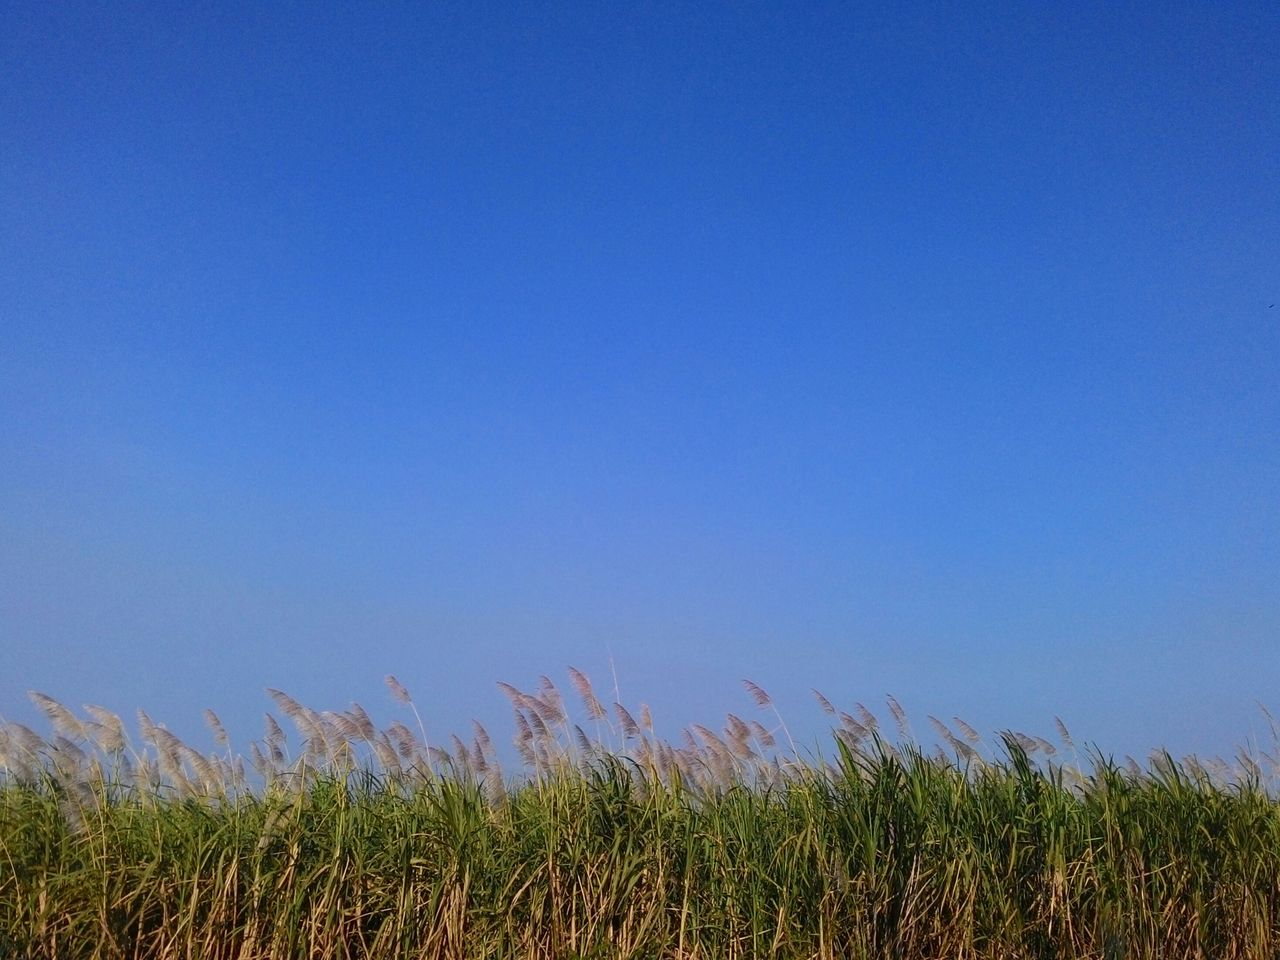 Growth Plant Nature Crop  Field Blue No People Outdoors Springtime Day Tranquility Agriculture Flower Rural Scene Sky Clear Sky Landscape Beauty In Nature Fragility Beauty Sugar Cane Reeds Reed - Grass Family Copy Space